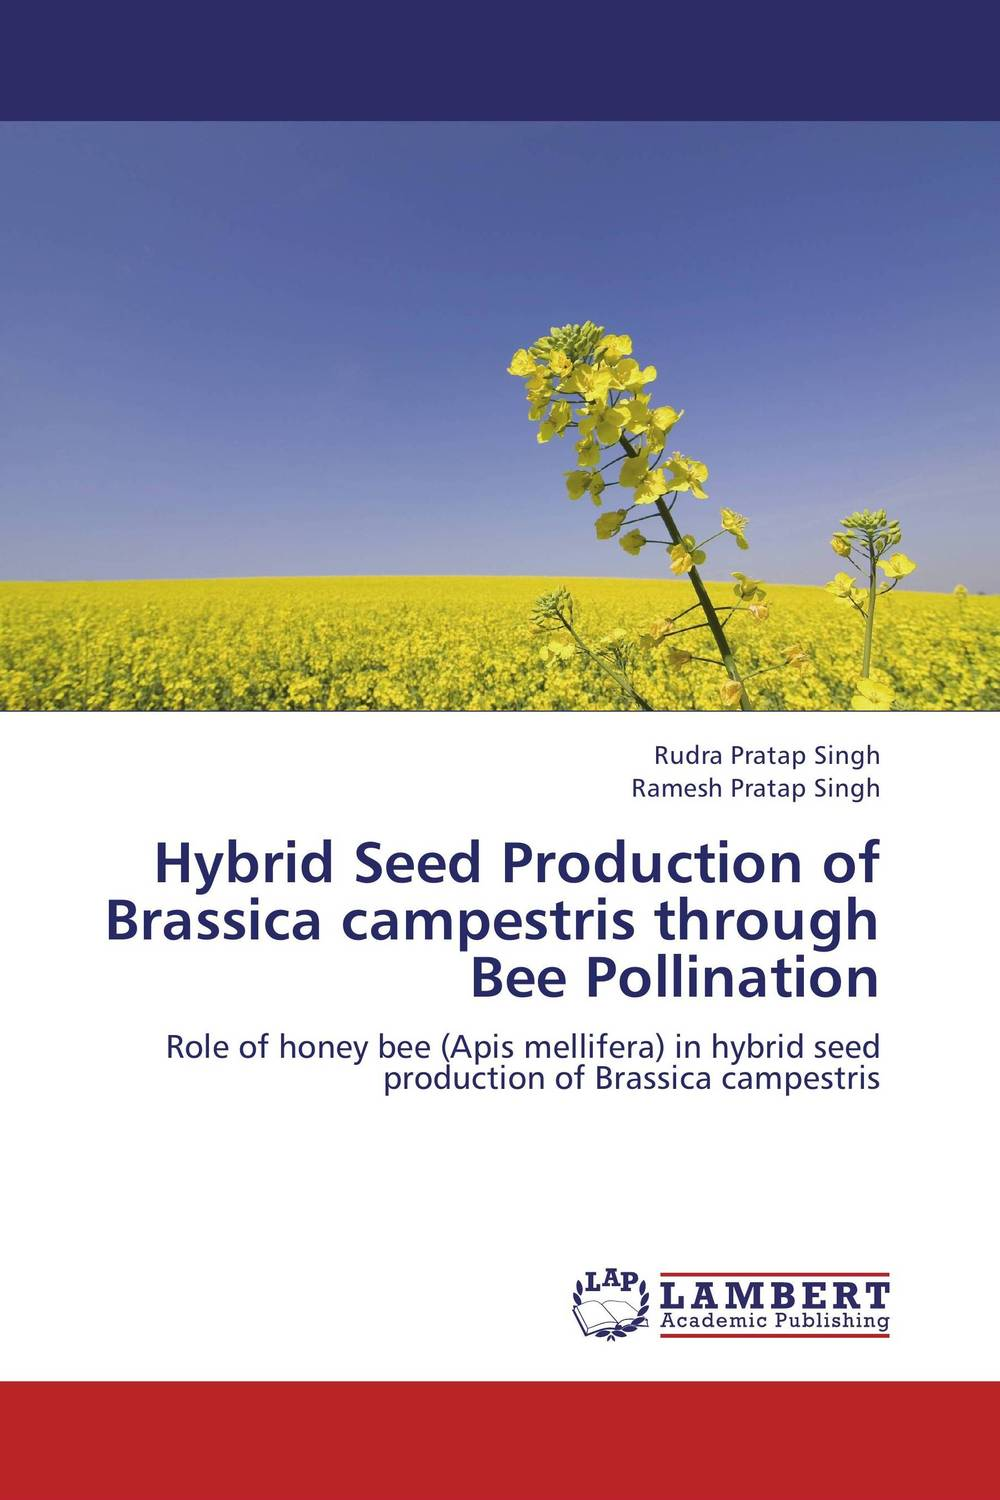 Hybrid Seed Production of Brassica campestris through Bee Pollination seed dormancy and germination